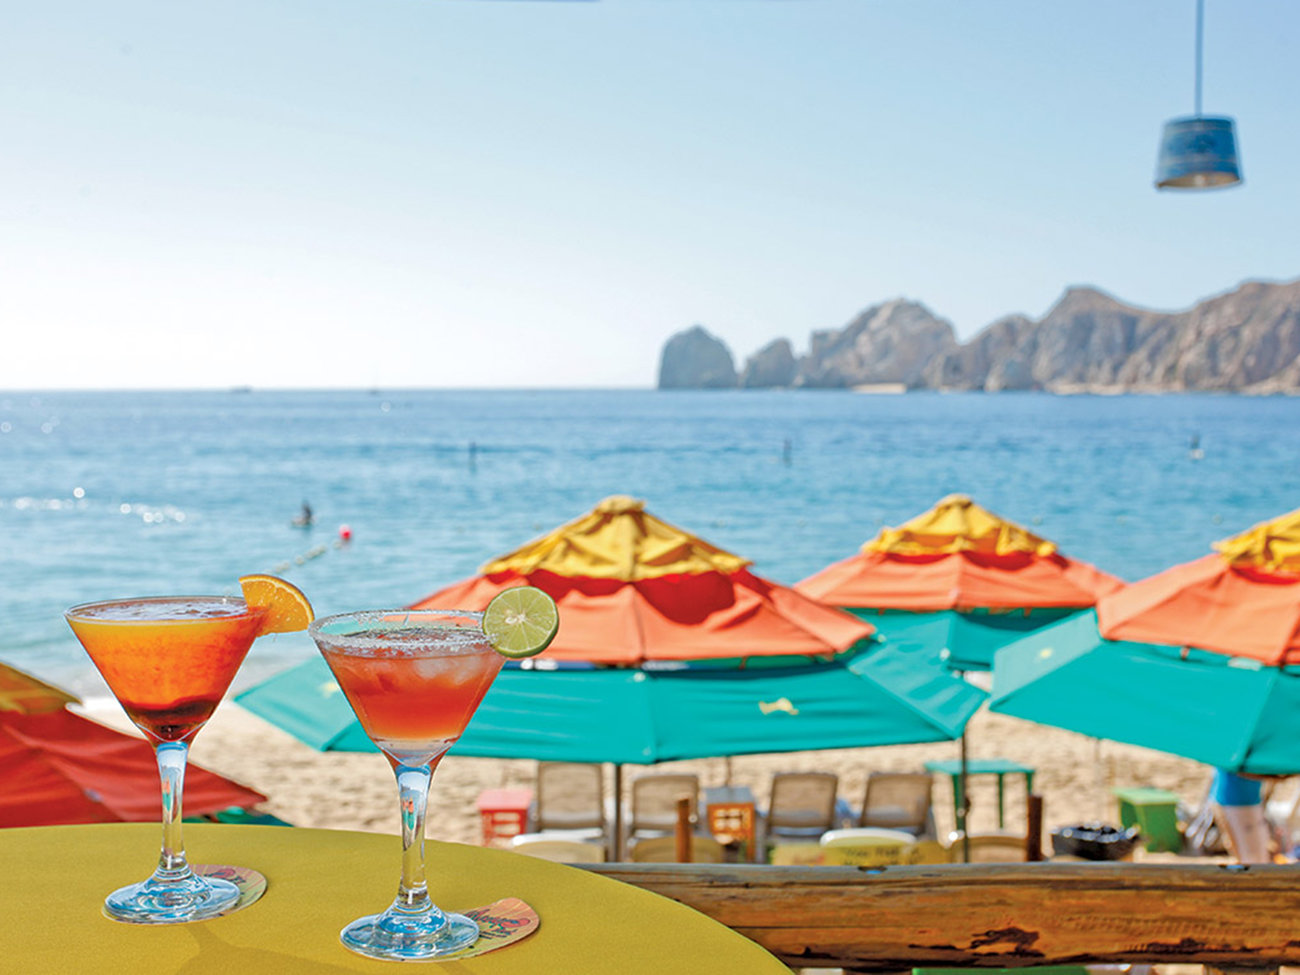 Mango Deck Restaurant, Bar & Beach Club in Los Cabos